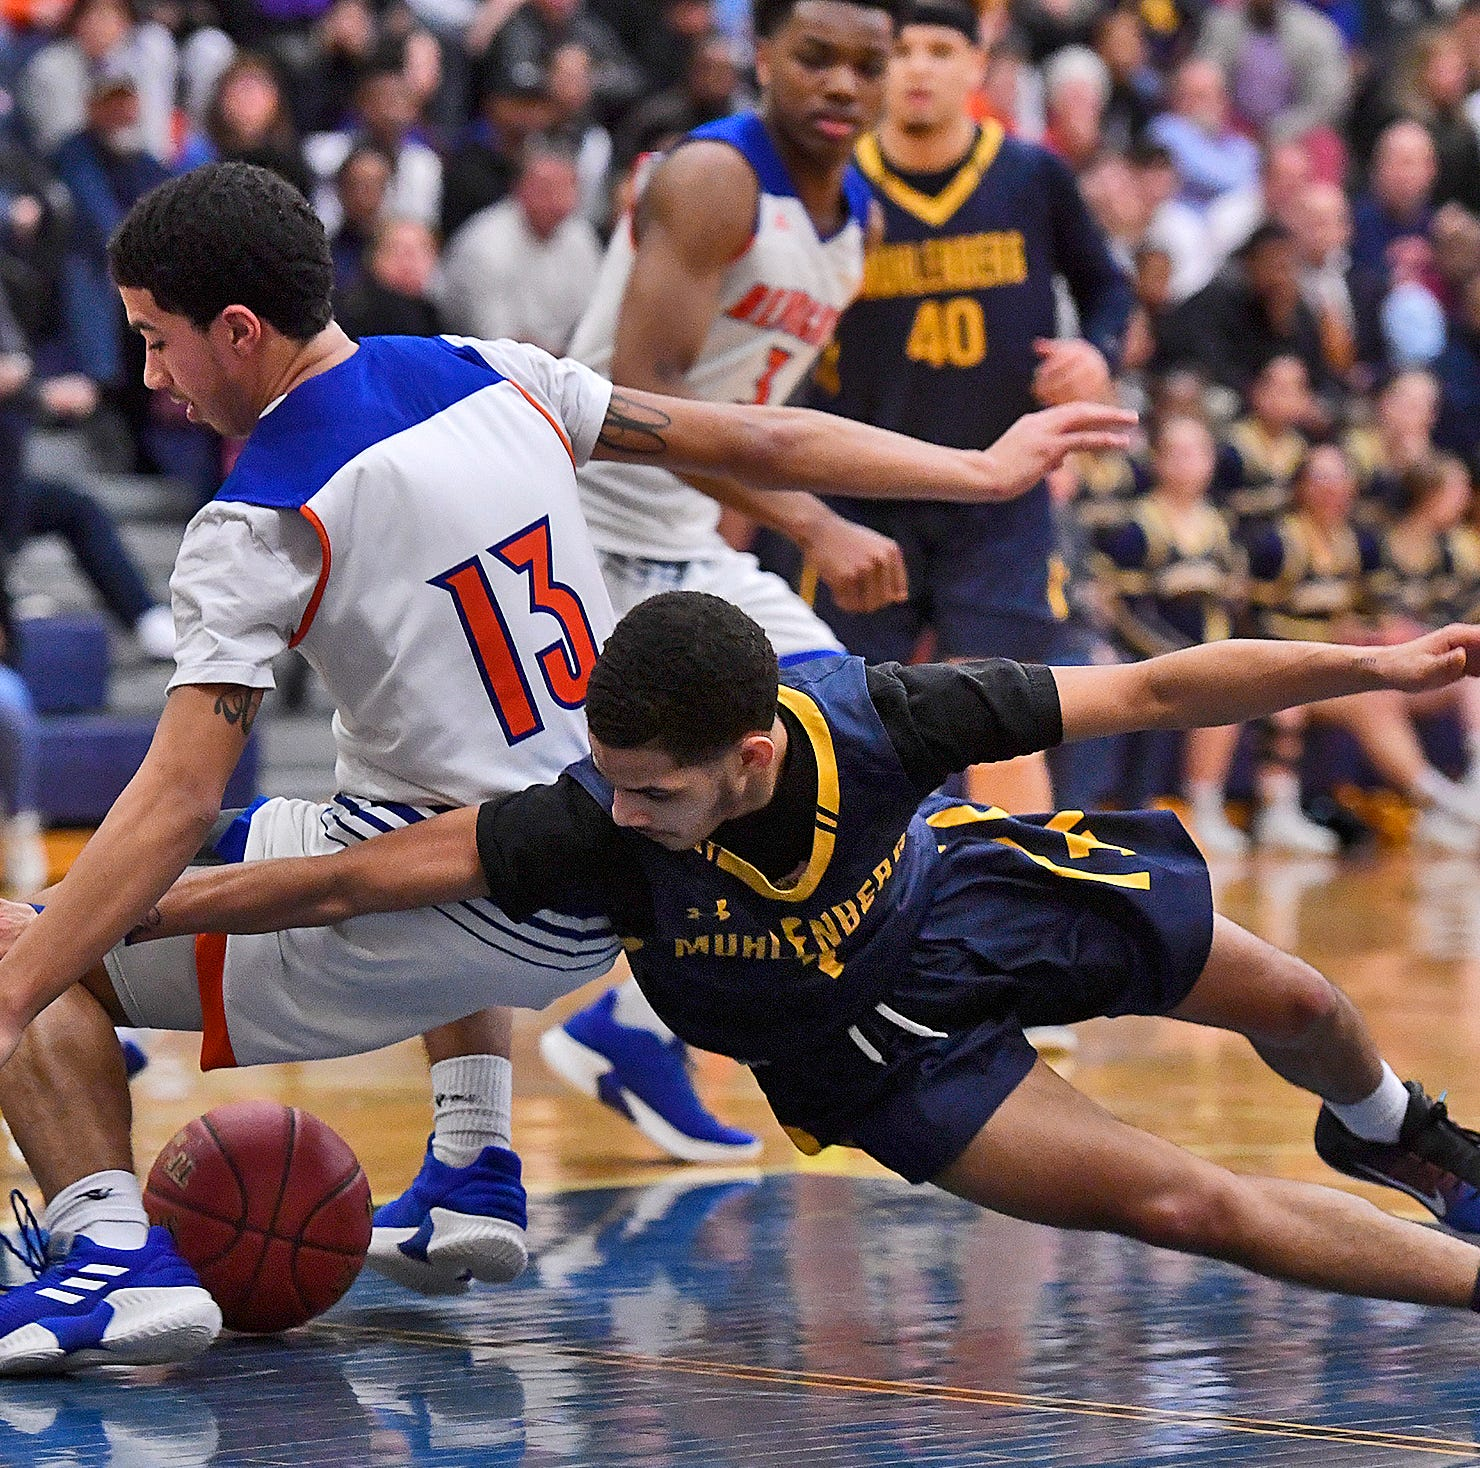 Public barred from York High basketball game, start time changed